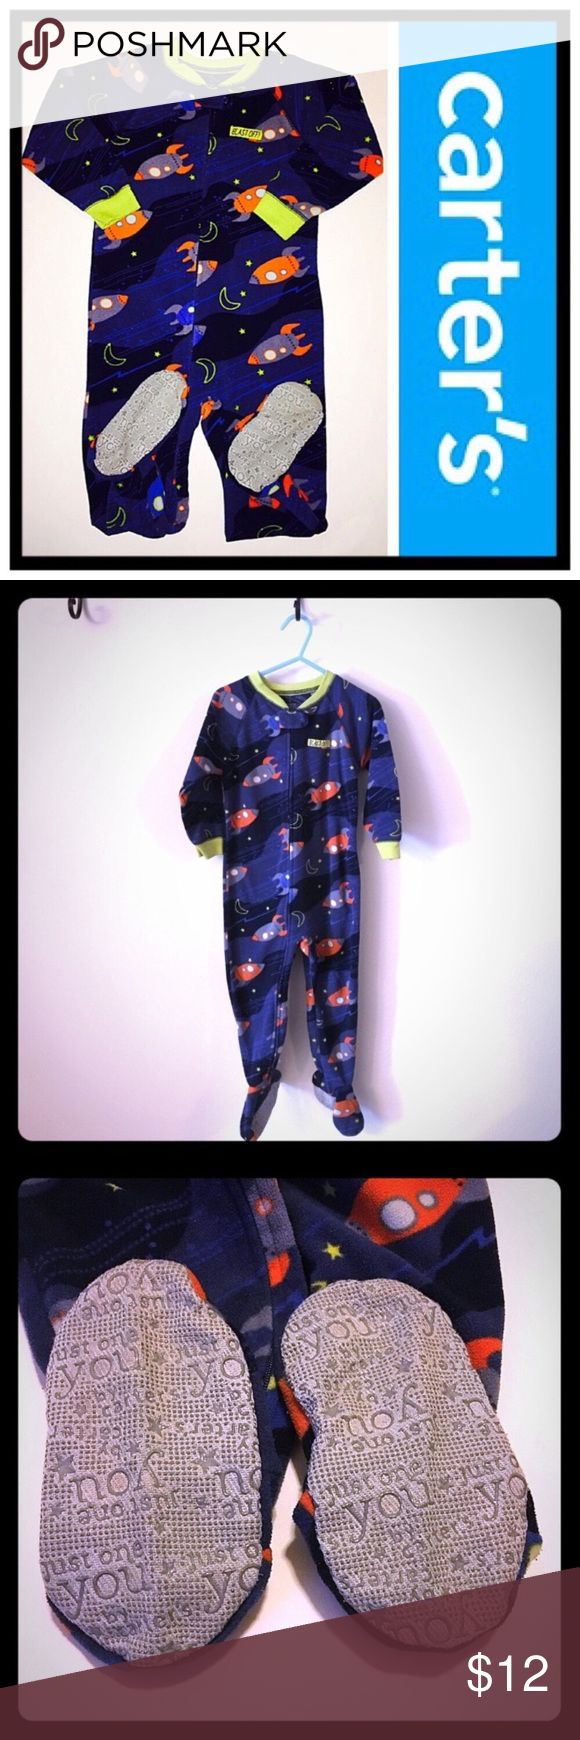 "Carter's 2T Rocket Fleece Footed Pajamas 📦Same day shipping (excluding Sun/holidays or orders placed after P.O. Closed) ❤️Save on shipping: Add all of your ""likes"" to a bundle and submit an offer  Your little space explorer will be snuggly & styling in these fleece footed pjs. 🚀 Grips on feet to help to avoid slipping. They zip all the way down for easy on/off with a button closure at the top of the zipper. No holes or stains. Normal wear from use. Smoke/pet free home. 12"" chest, 11.5""…"